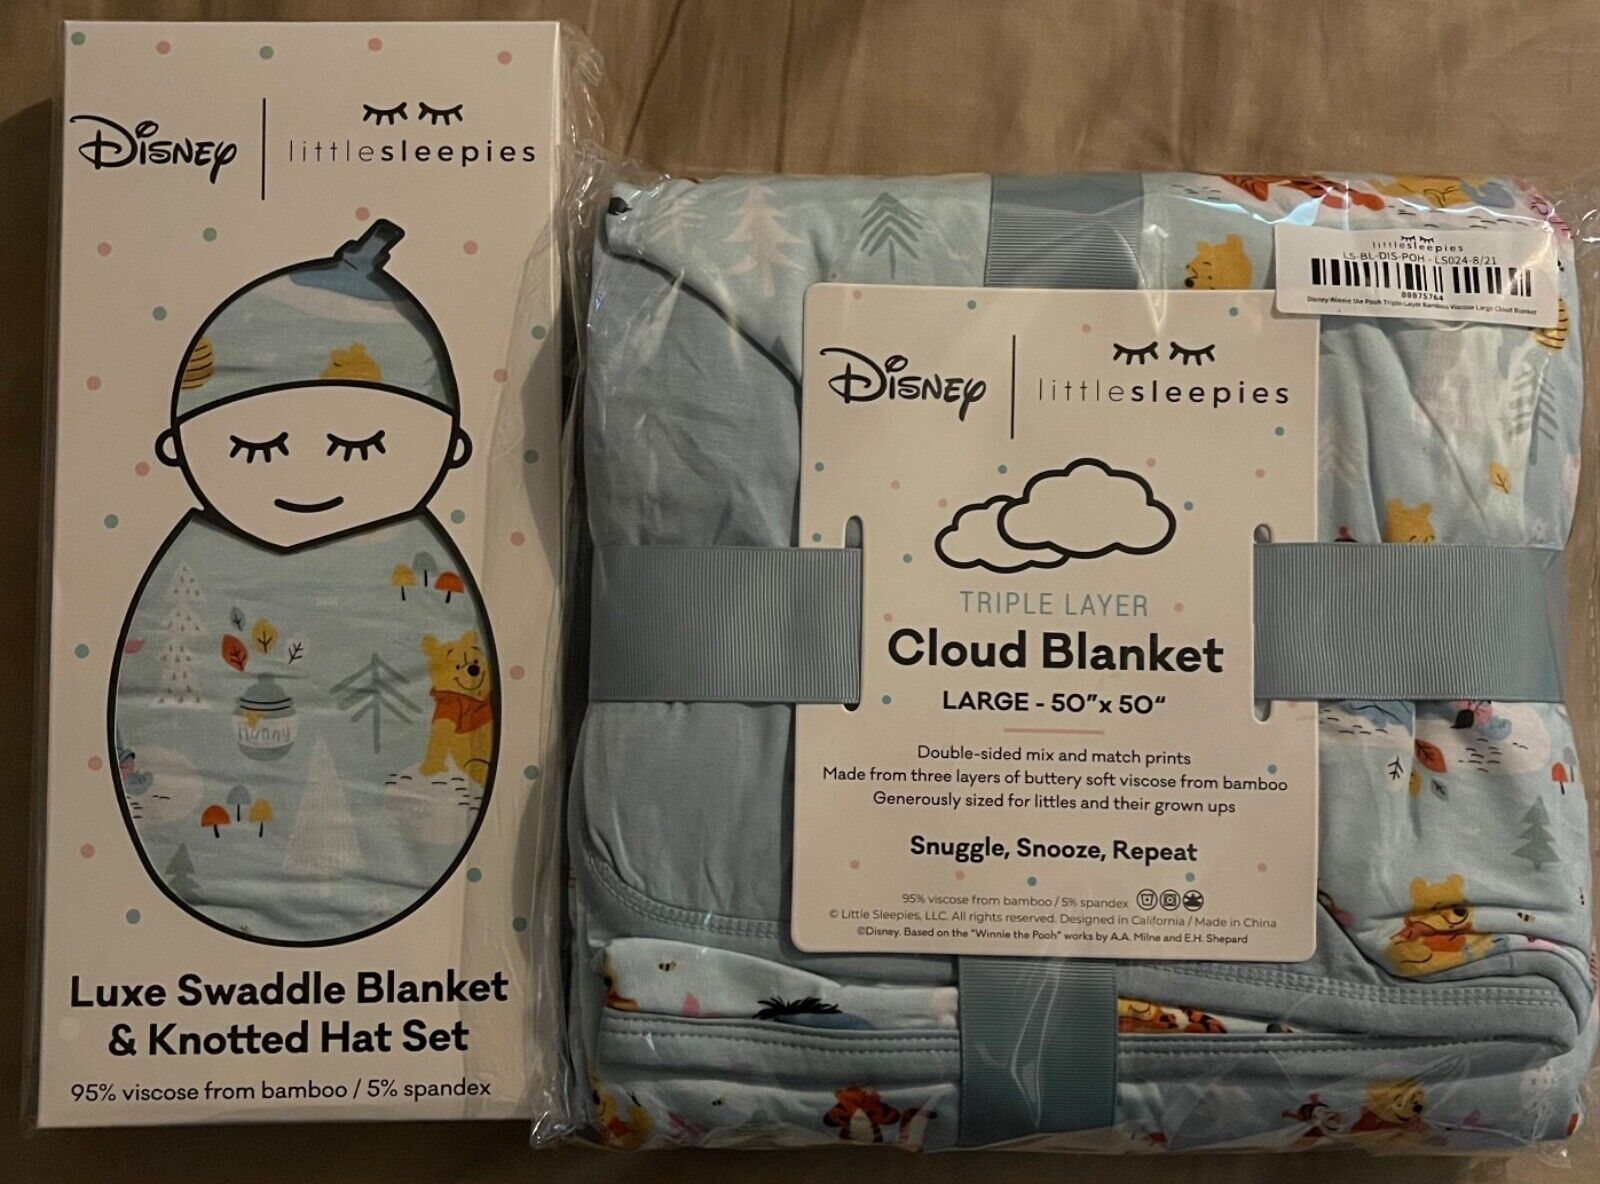 Little Sleepies Pooh And Pals Cloud Blanket And Swaddles - $150.00